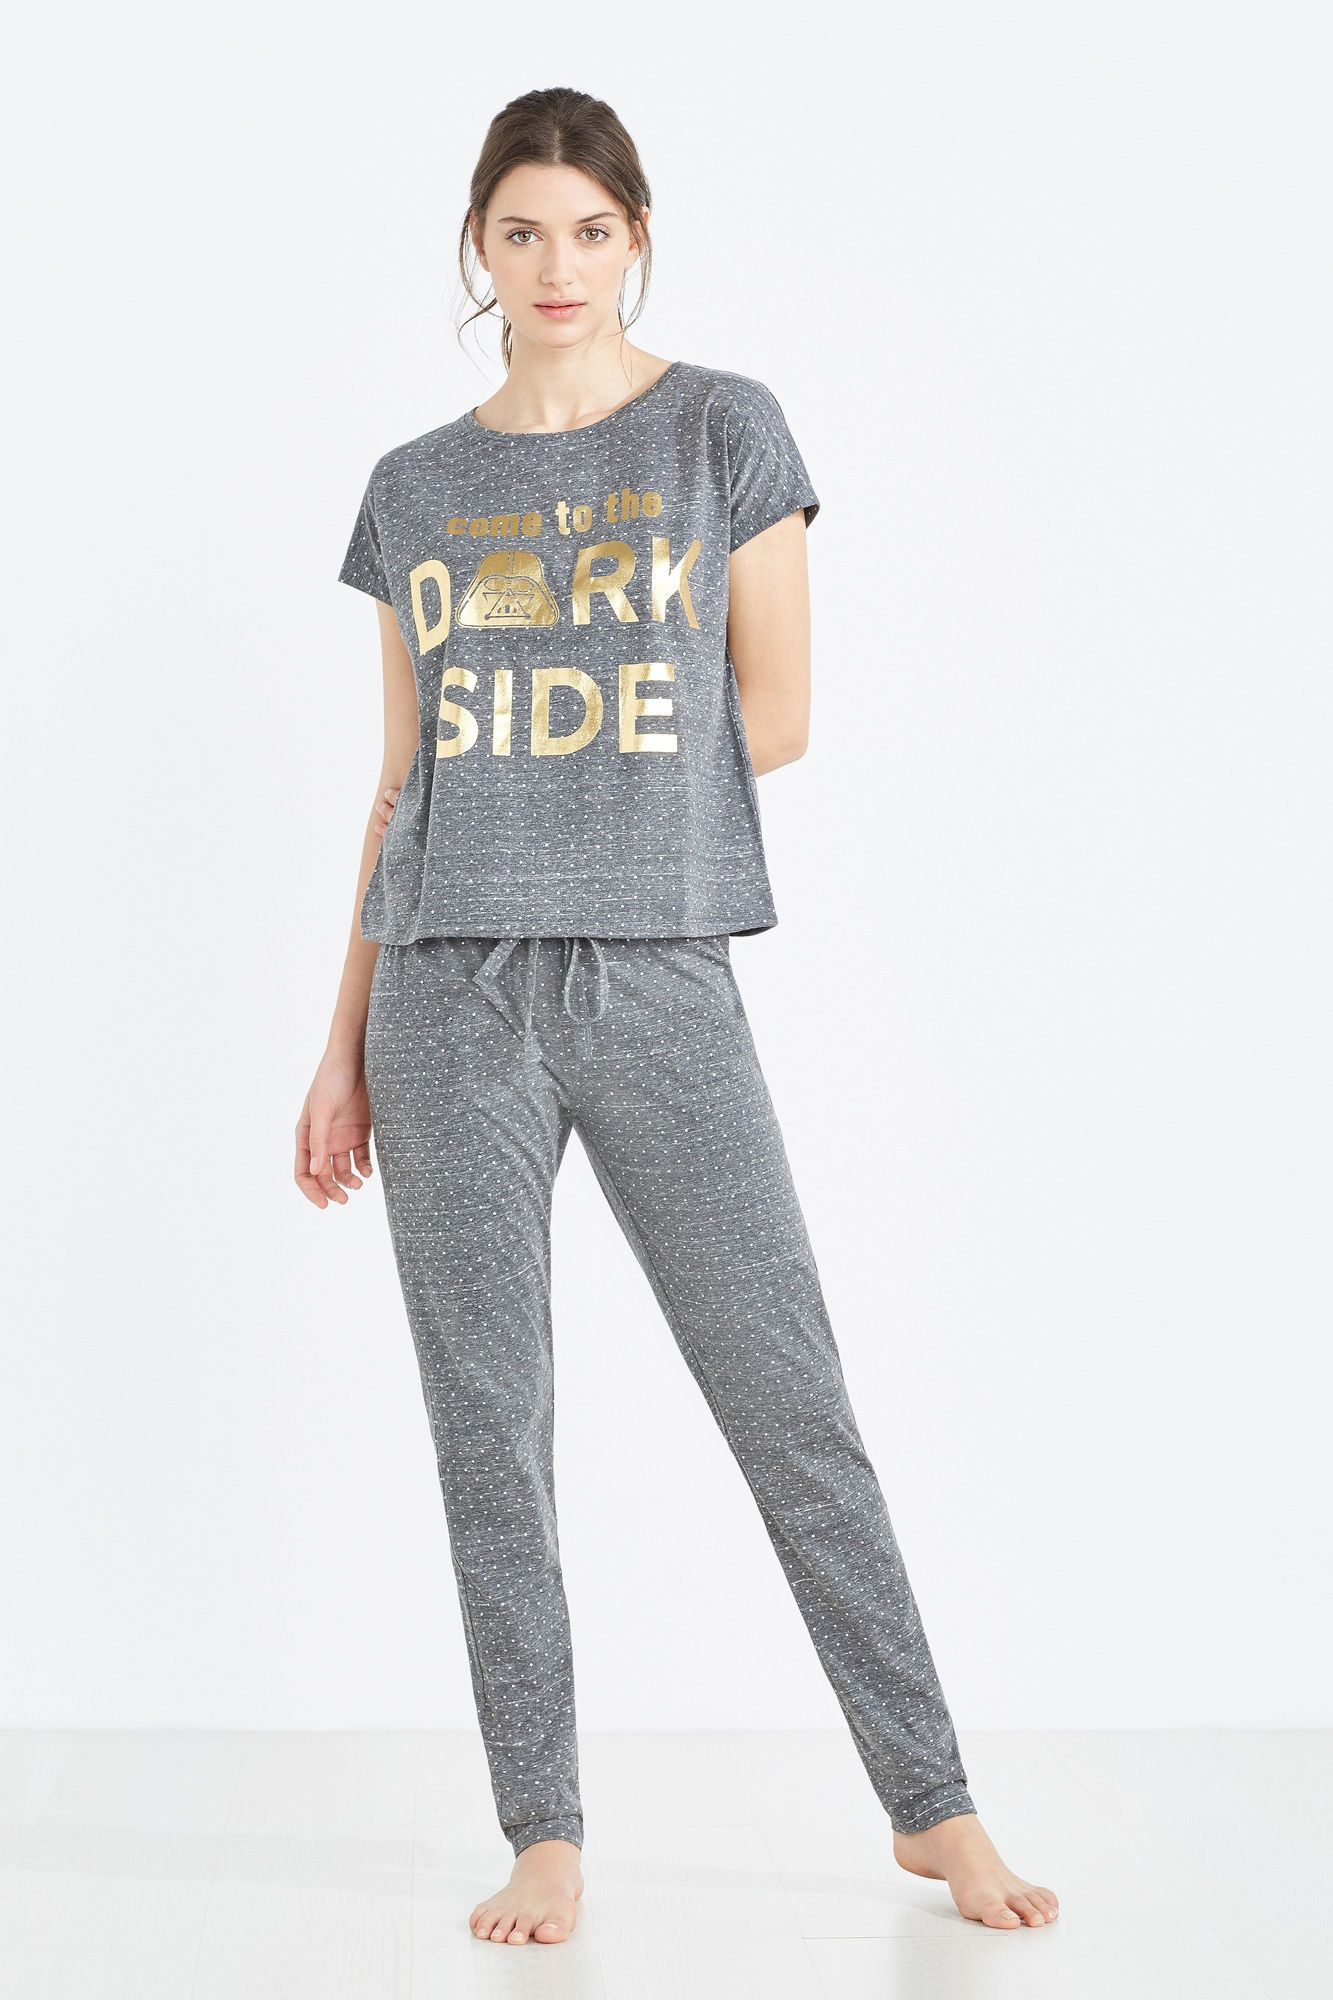 782d3b0e81 Pijama de Star Wars  Come to the dark side